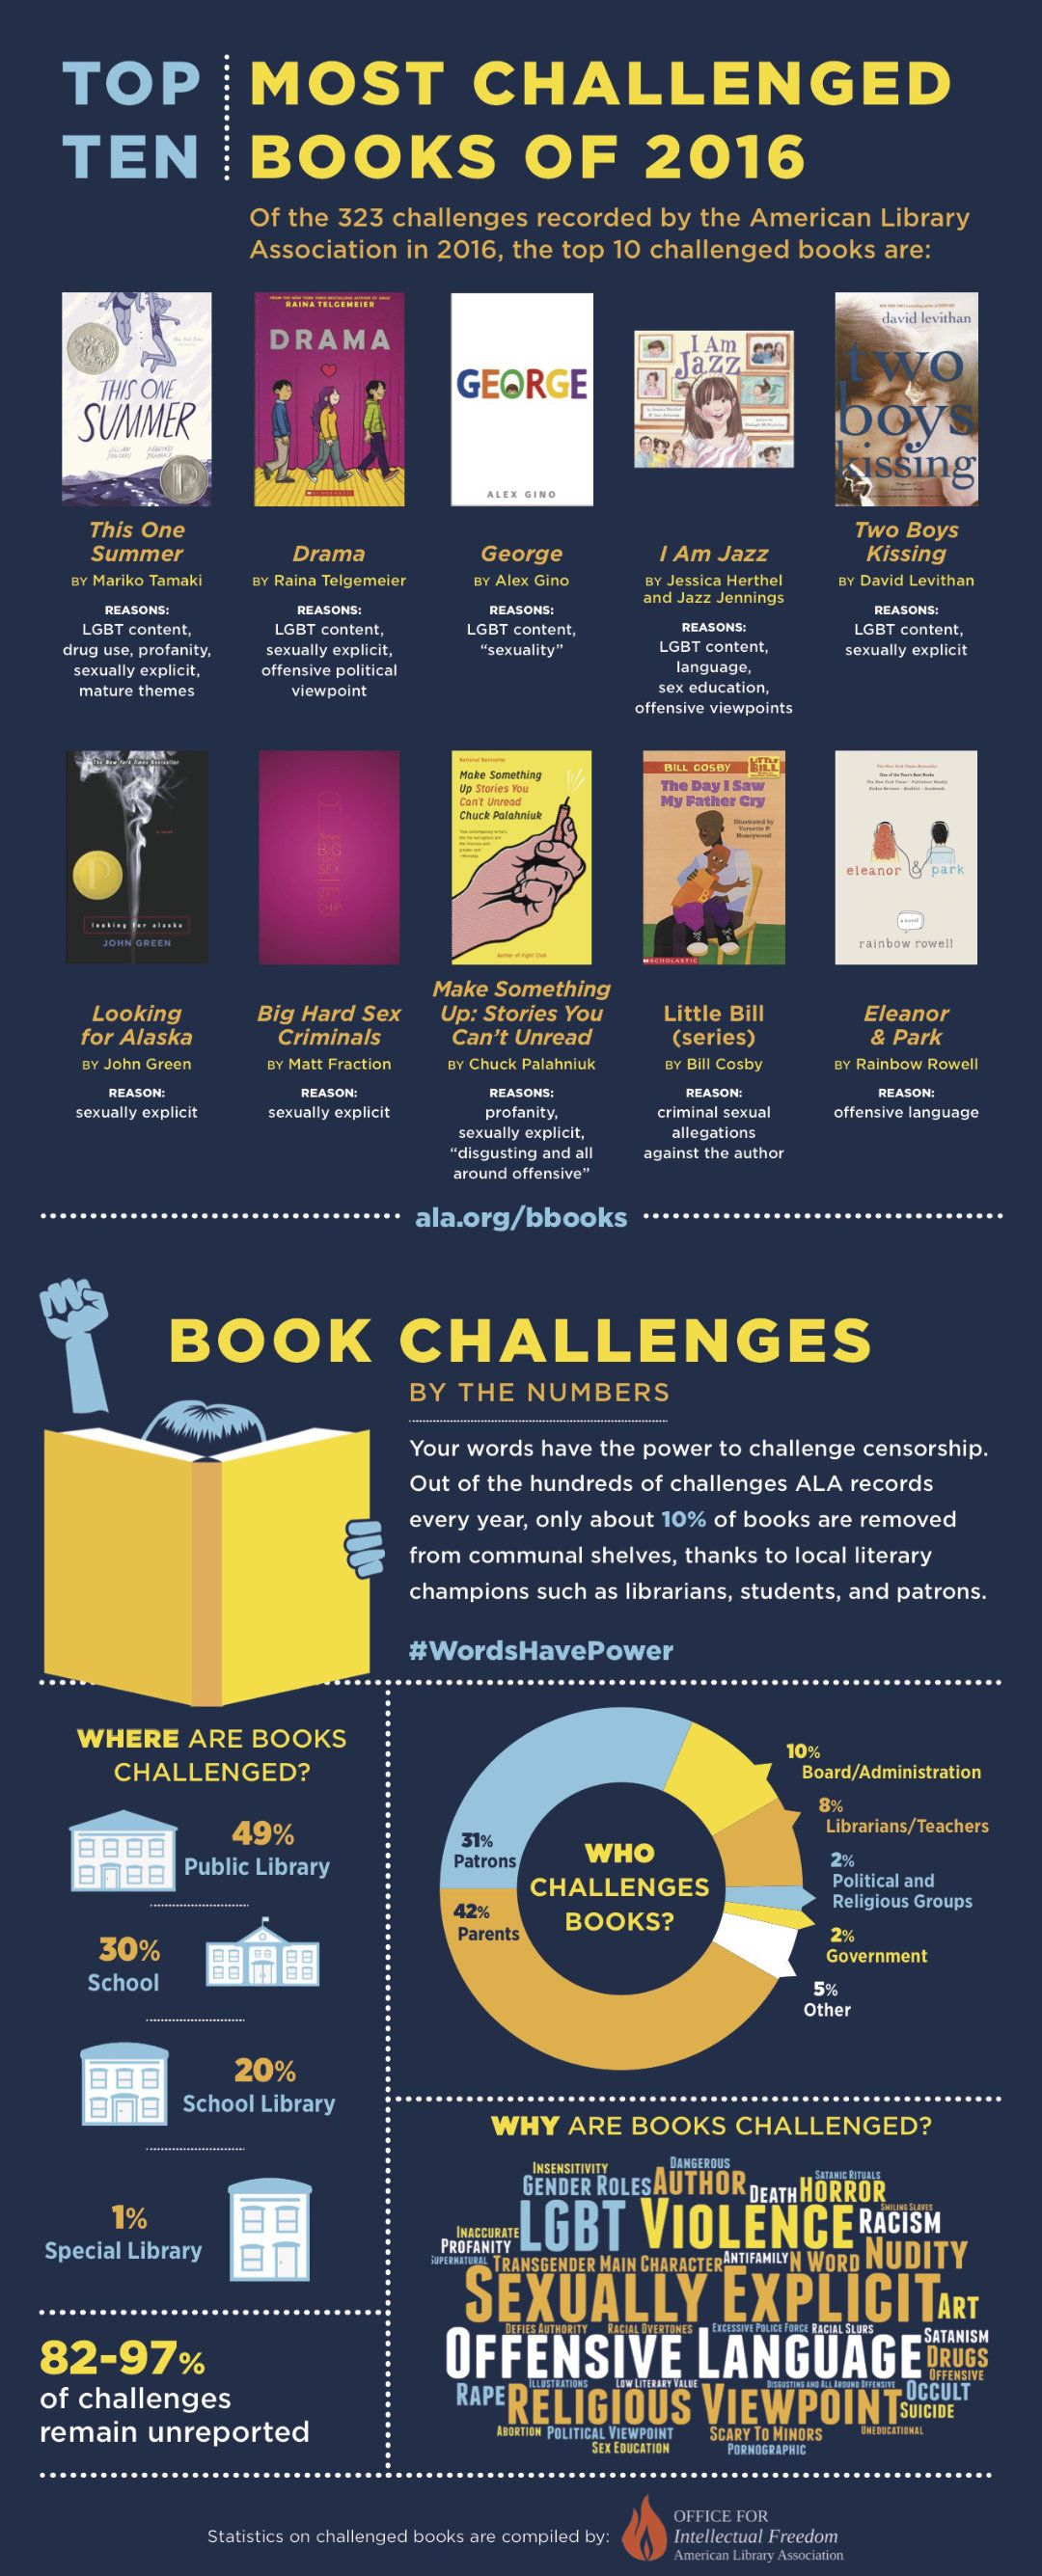 10 most challenged books of 2016 in the us infographic